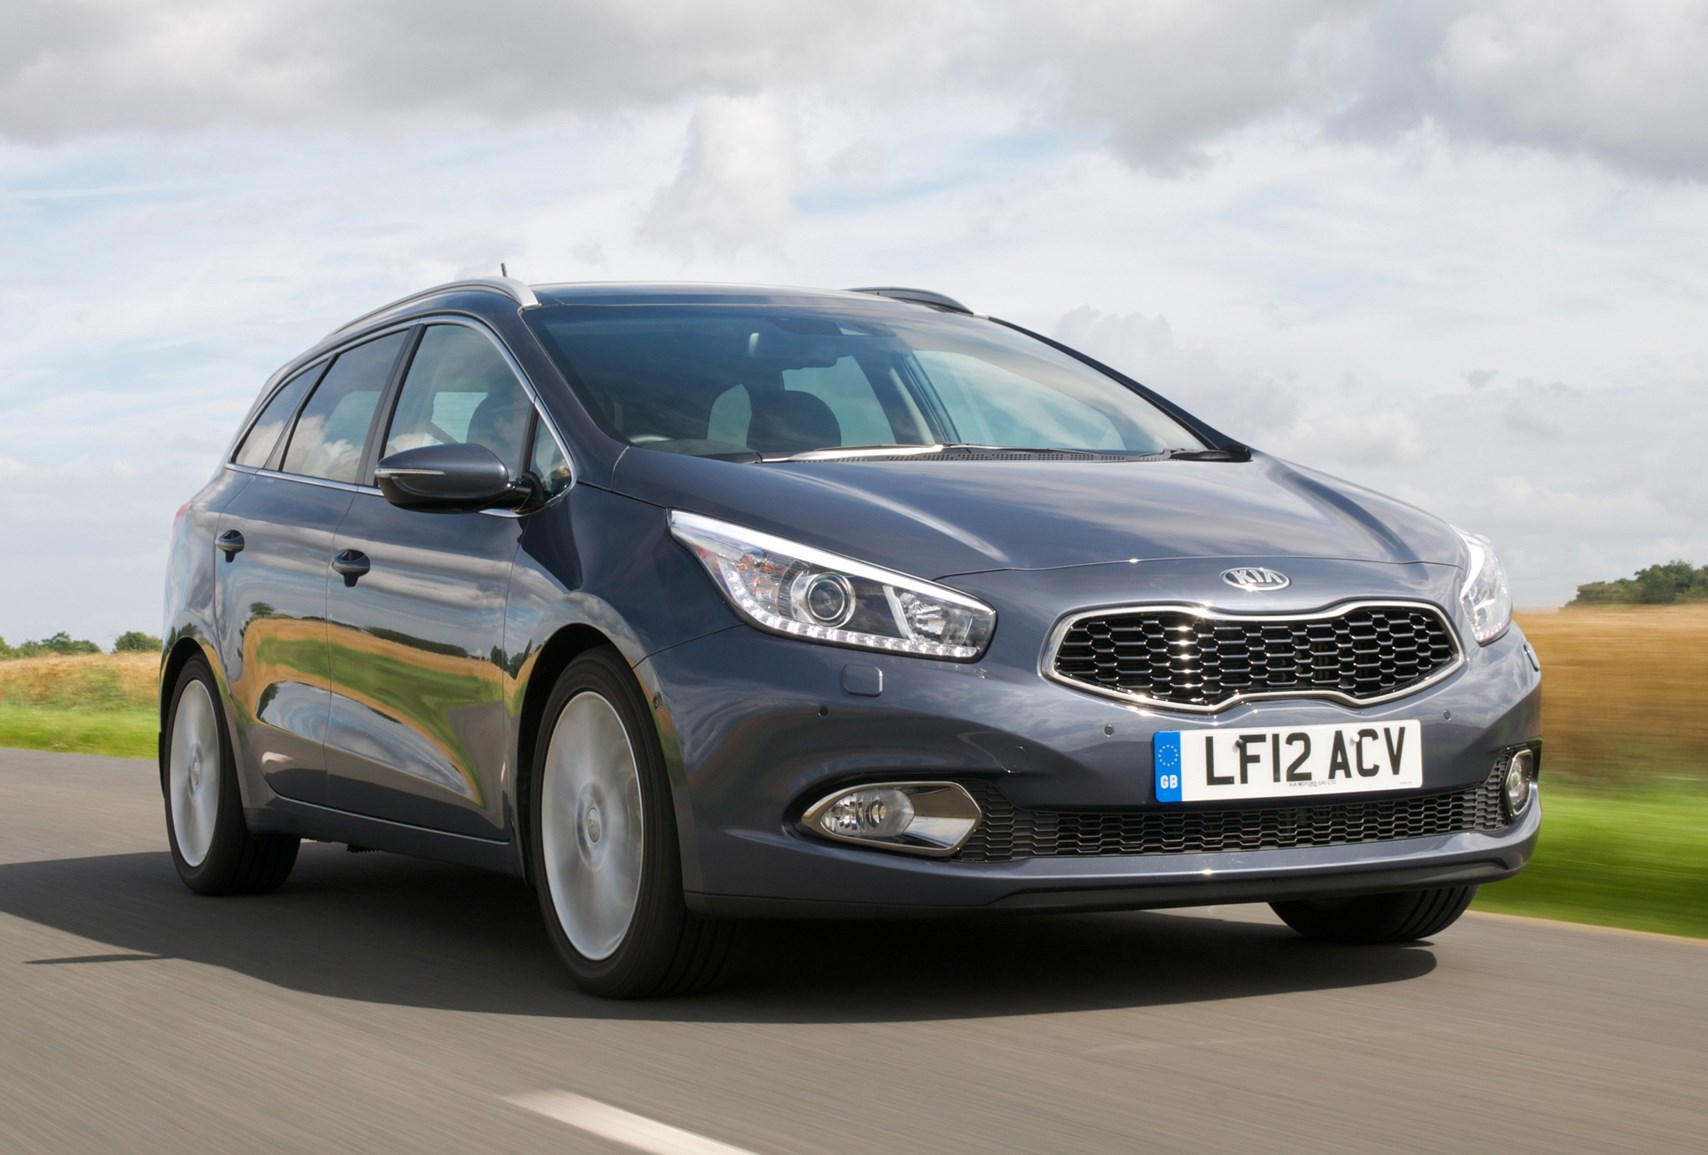 View all images of the Kia Ceed Sportswagon